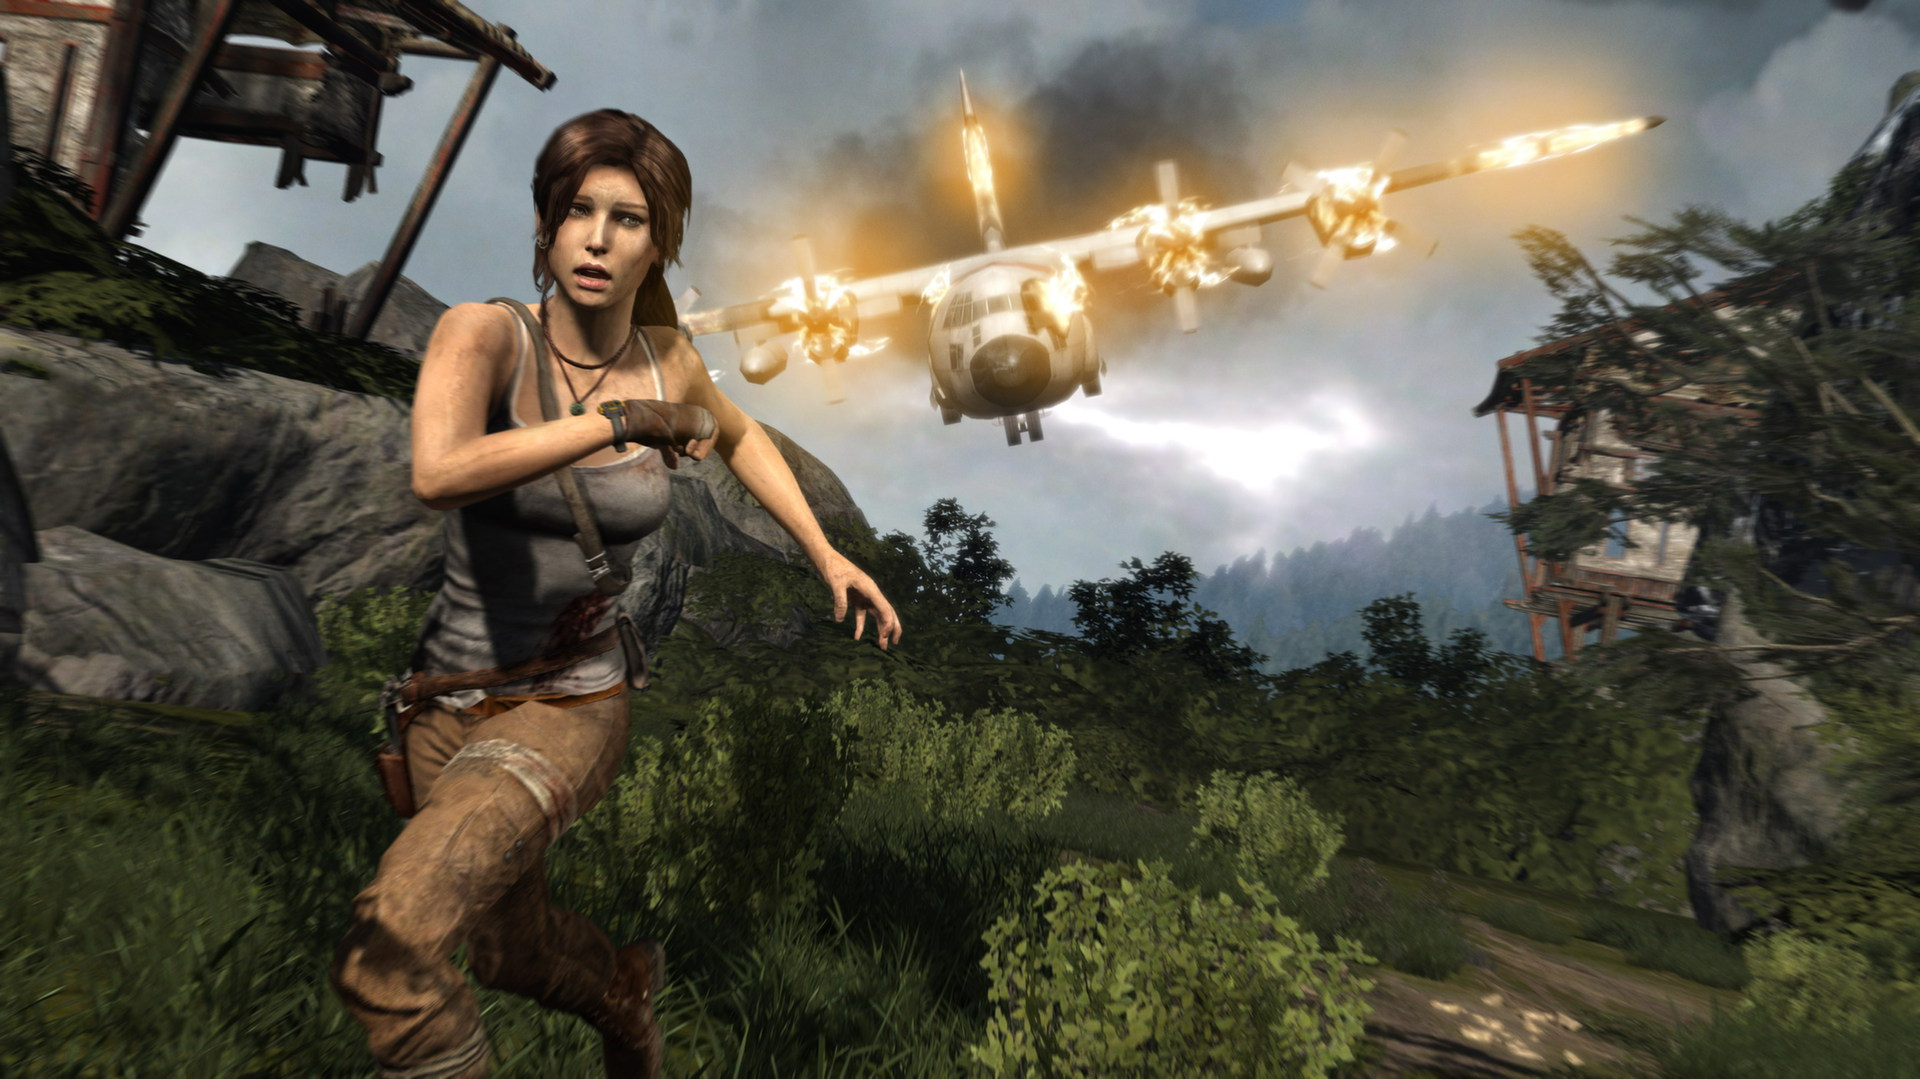 Find the best gaming PC for Tomb Raider